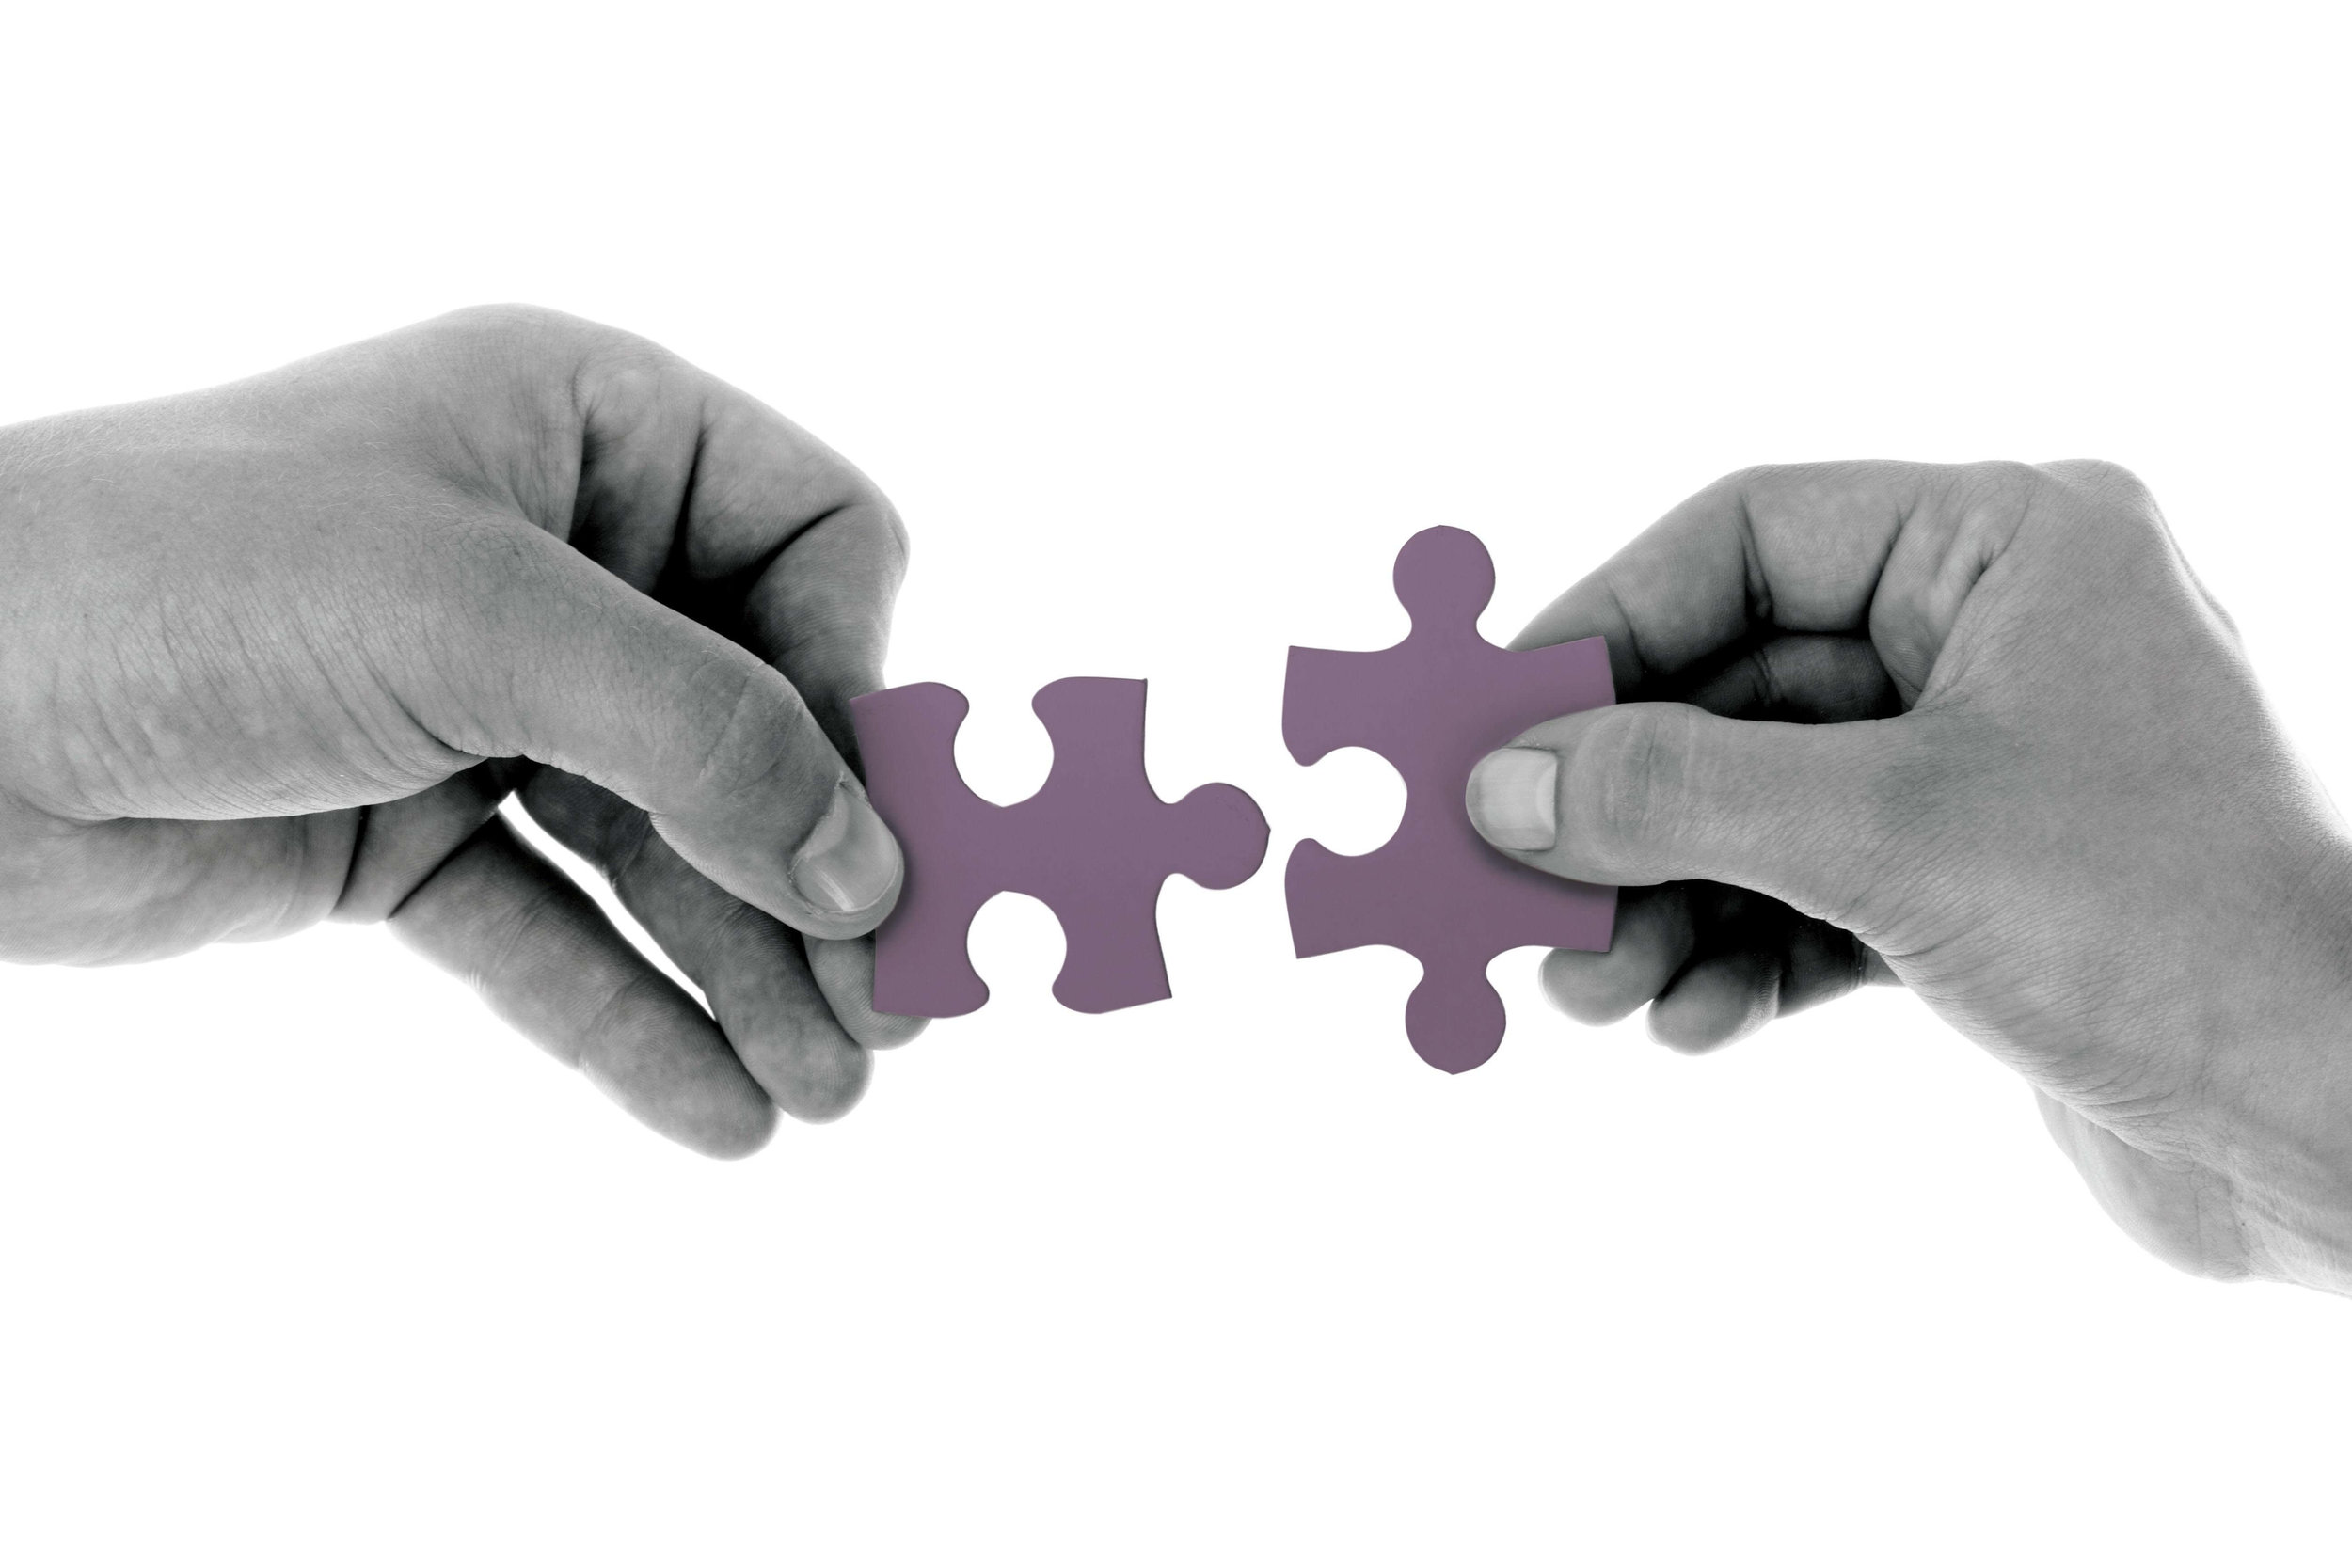 Two Hands Placing Puzzle Pieces